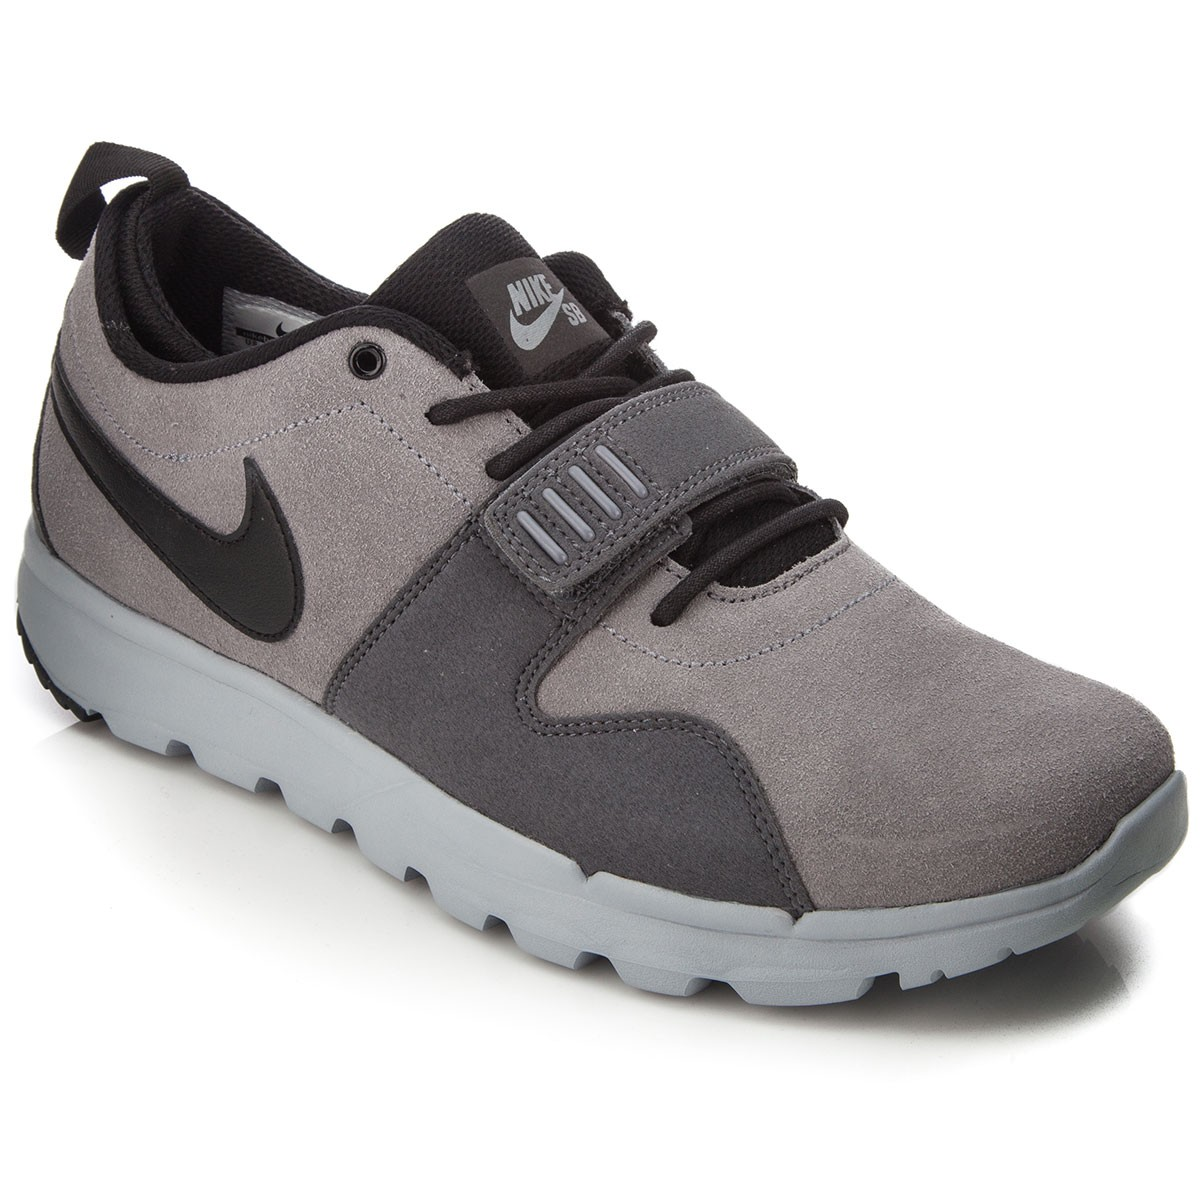 finest selection 5c4e2 6f288 Nike SB Trainerendor L Shoes - Cool Grey Wolf Grey Black - 6.0